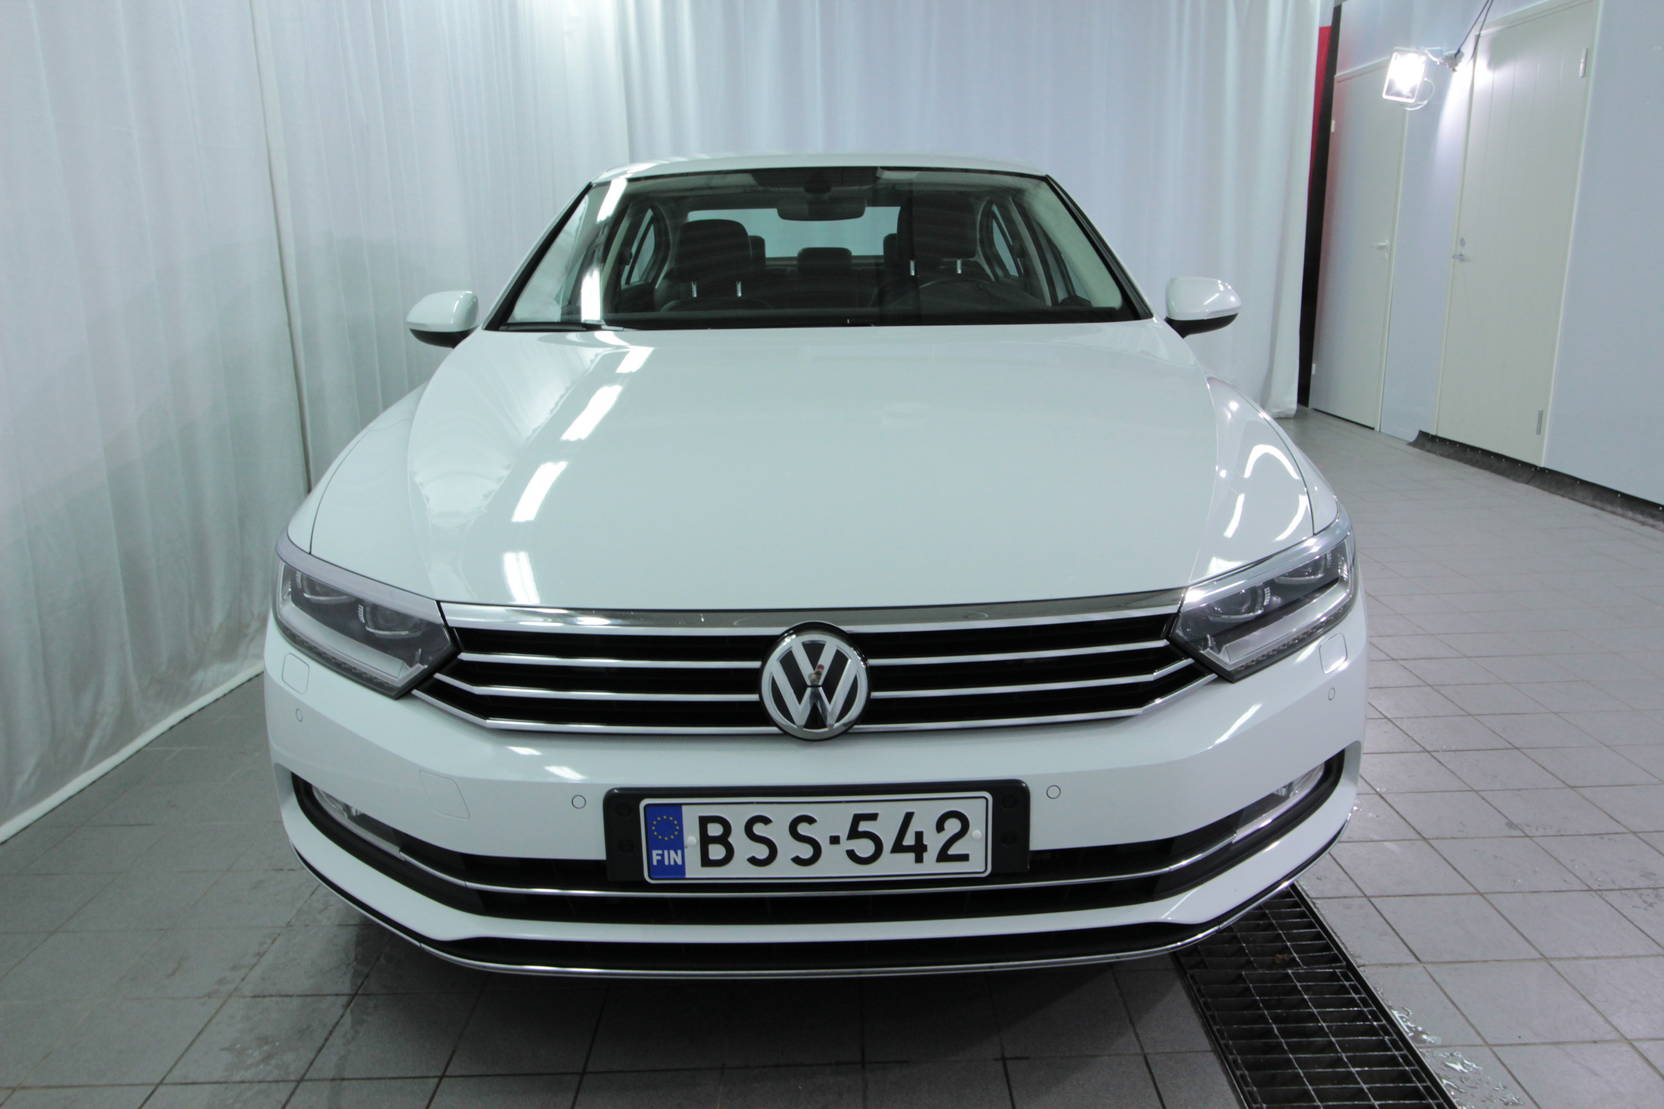 Volkswagen Passat Sedan Highline 1,6 Tdi 88 Kw Dsg detail2